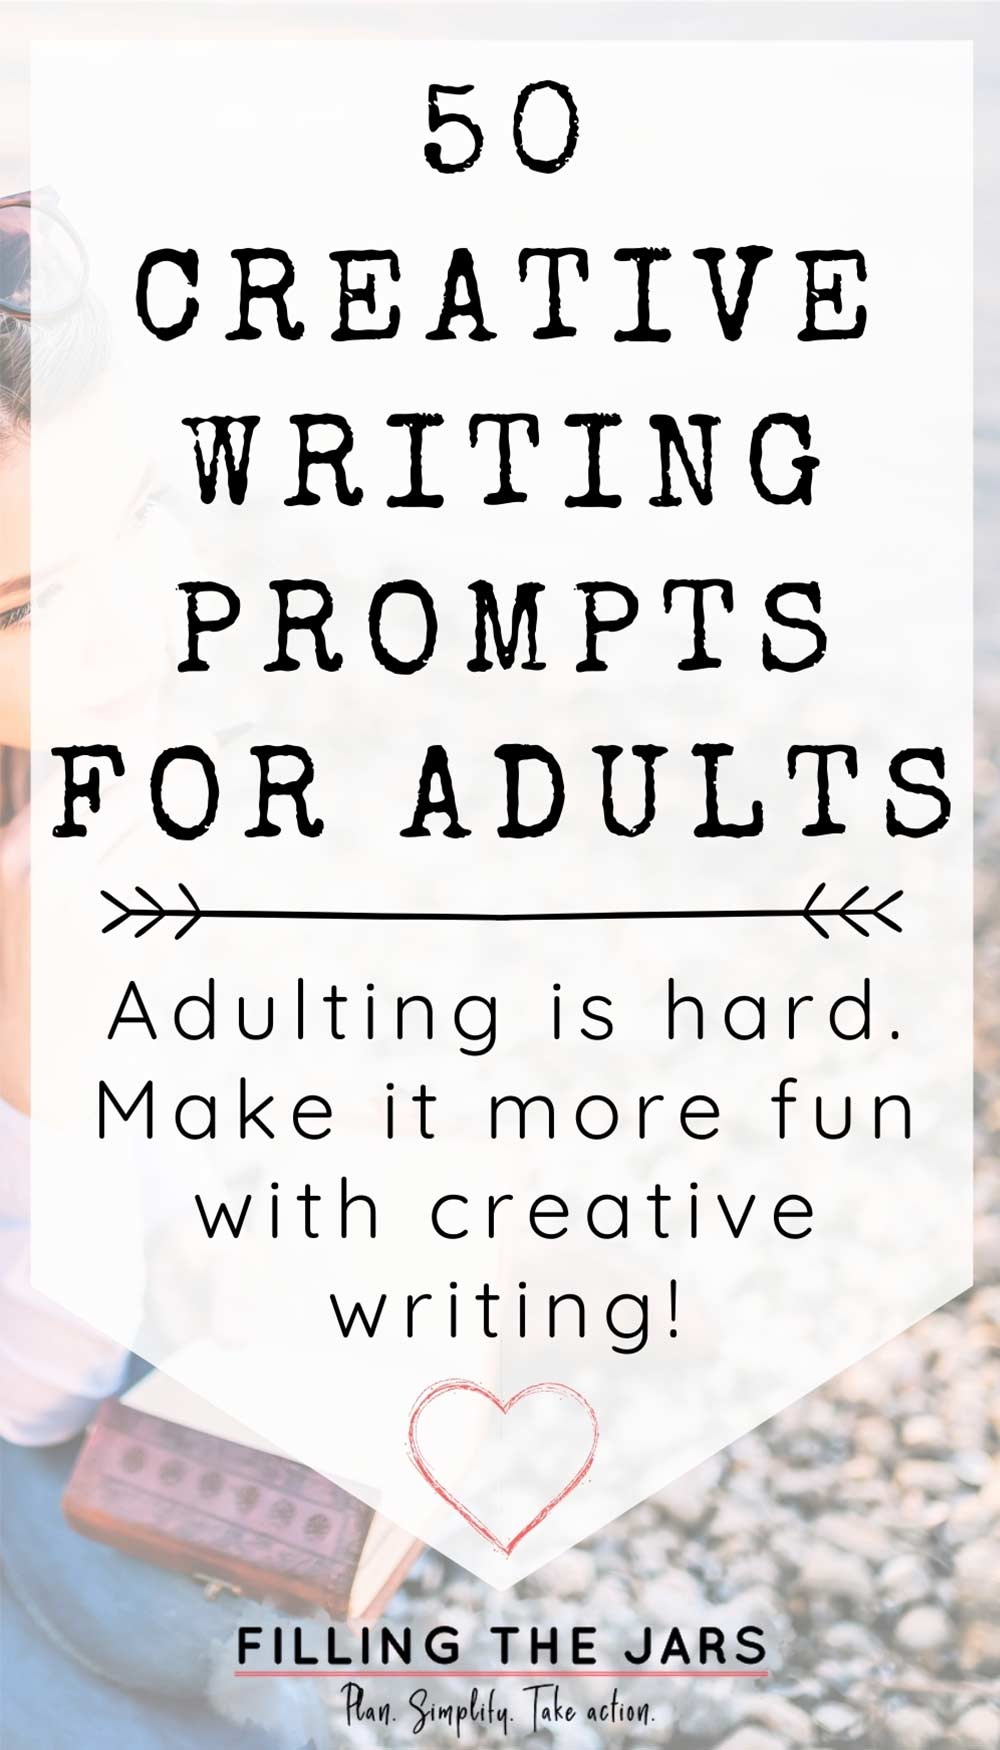 Text creative writing prompts for adults on white background over image of woman with blond hair wearing blue shirt and jeans sitting on towel on stony beach while preparing to write in a journal.